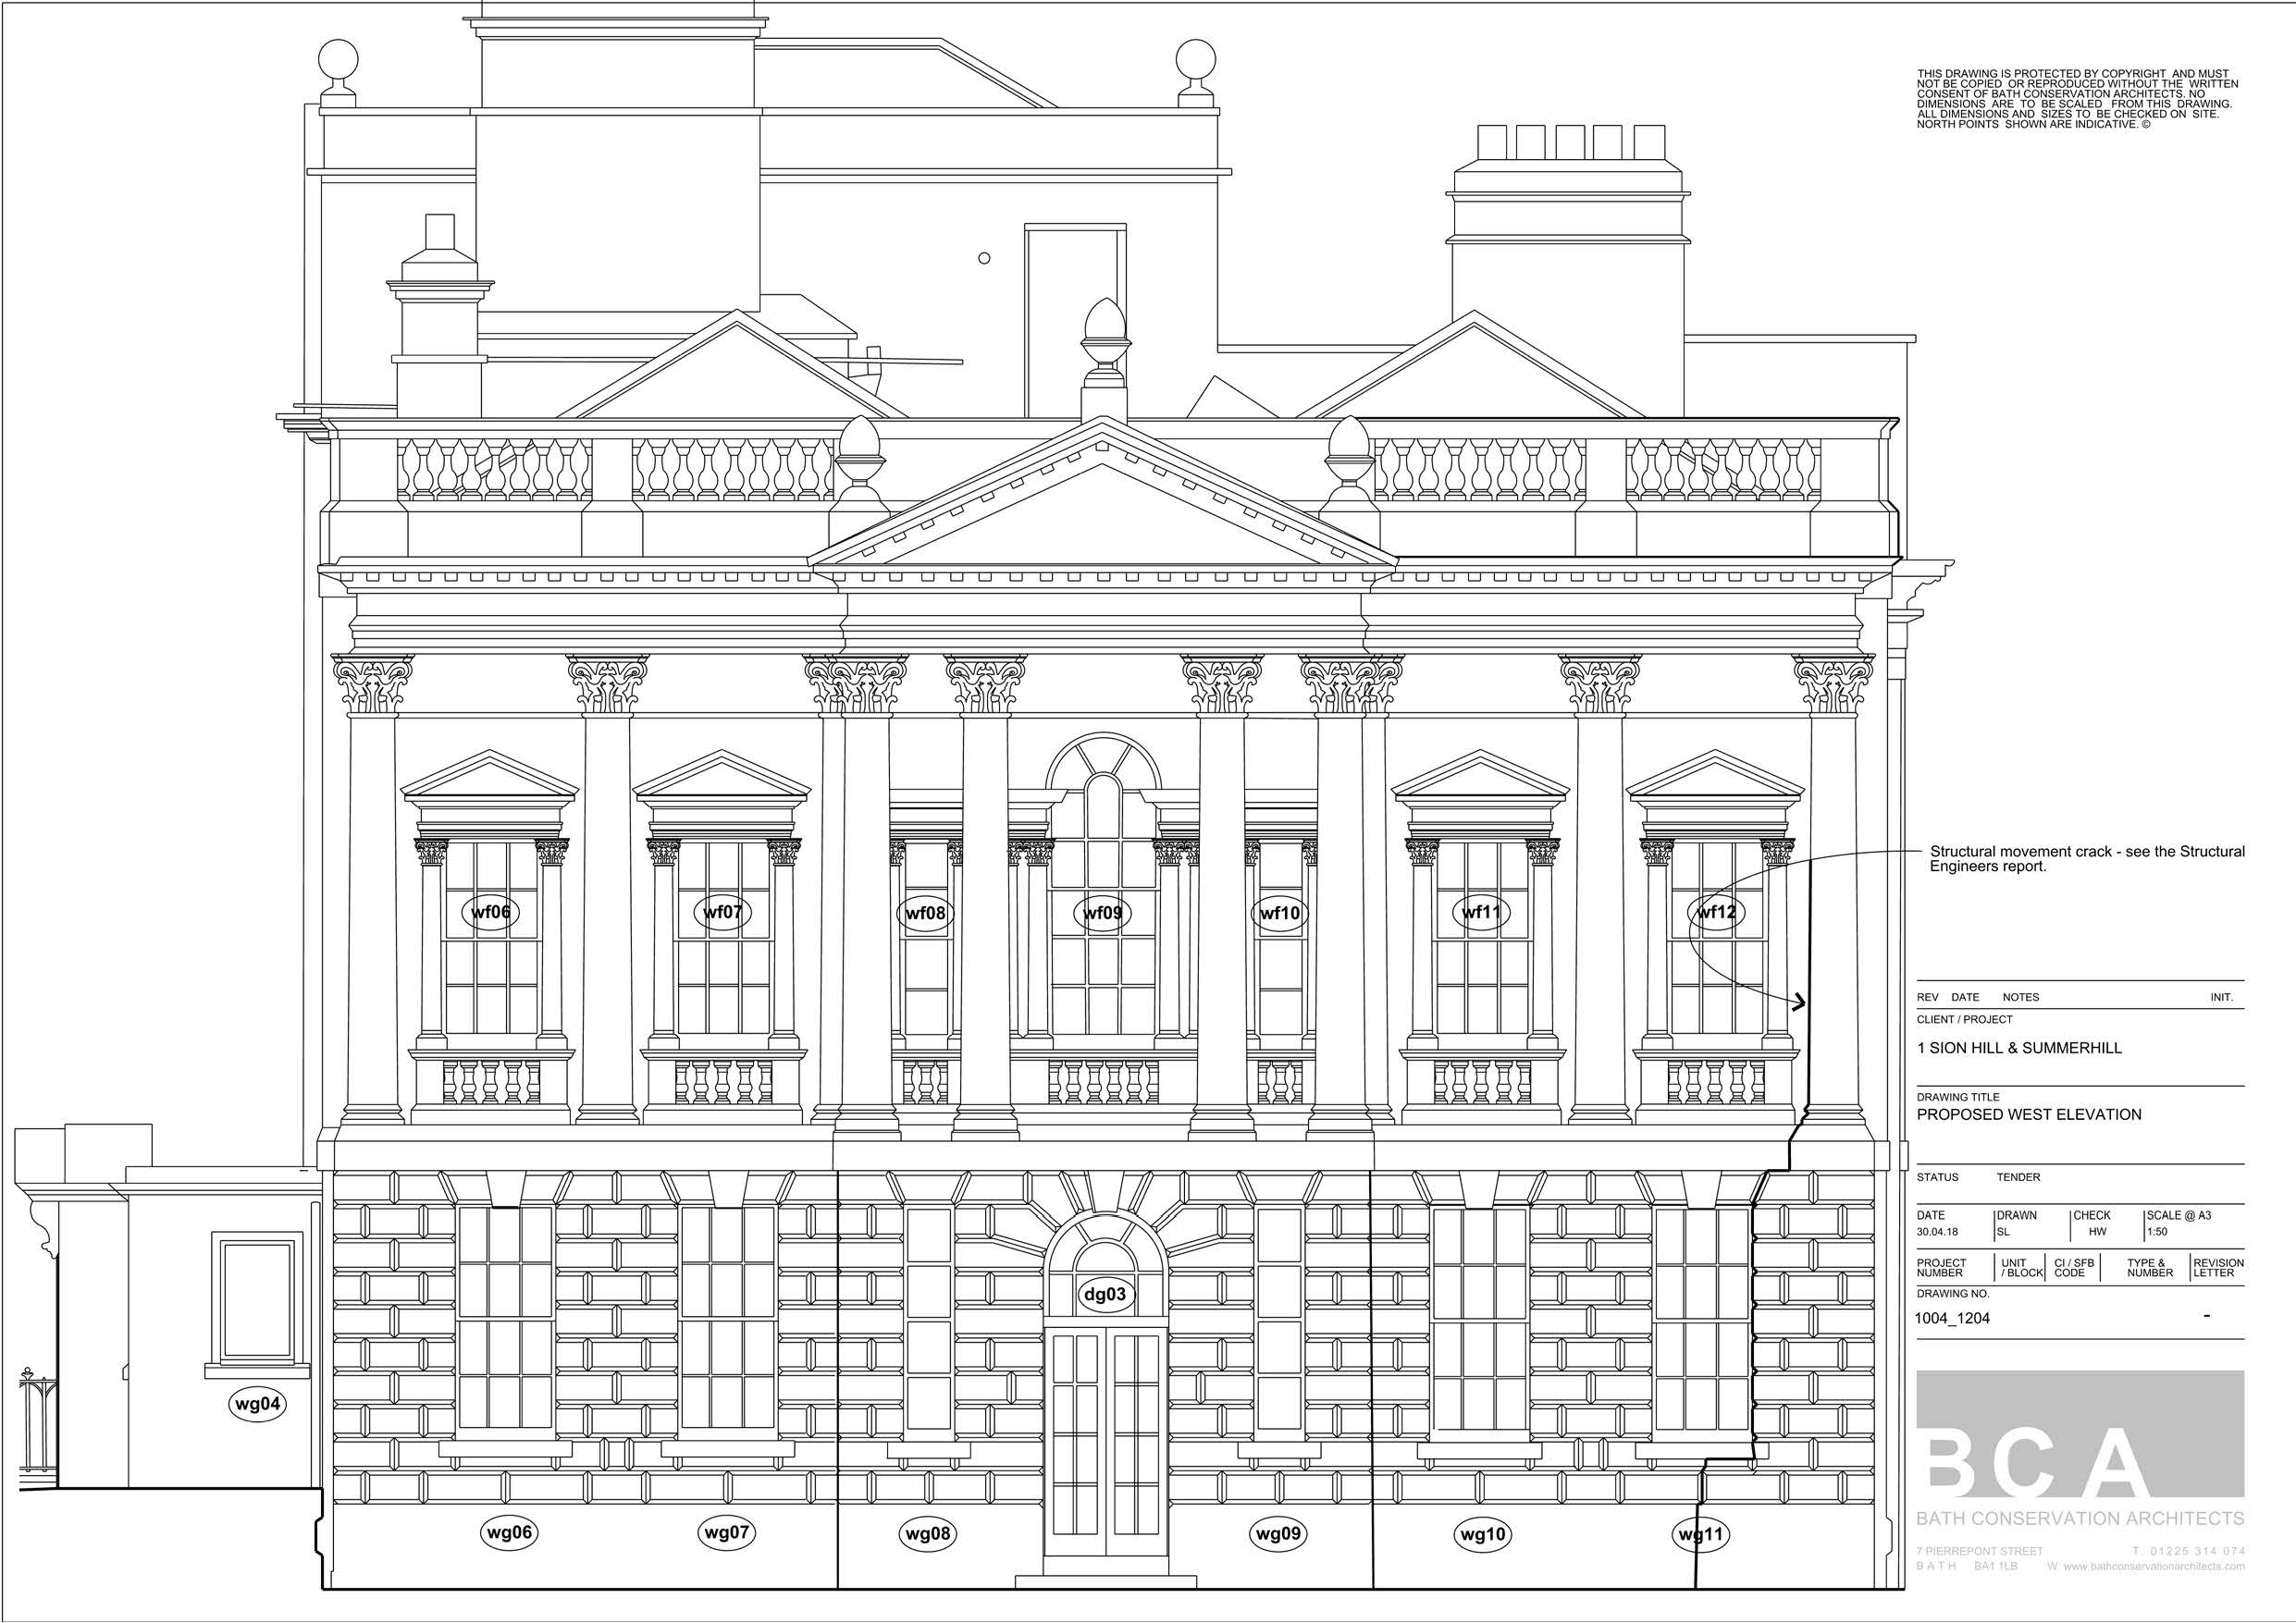 1004_1204_Proposed west elevation.png